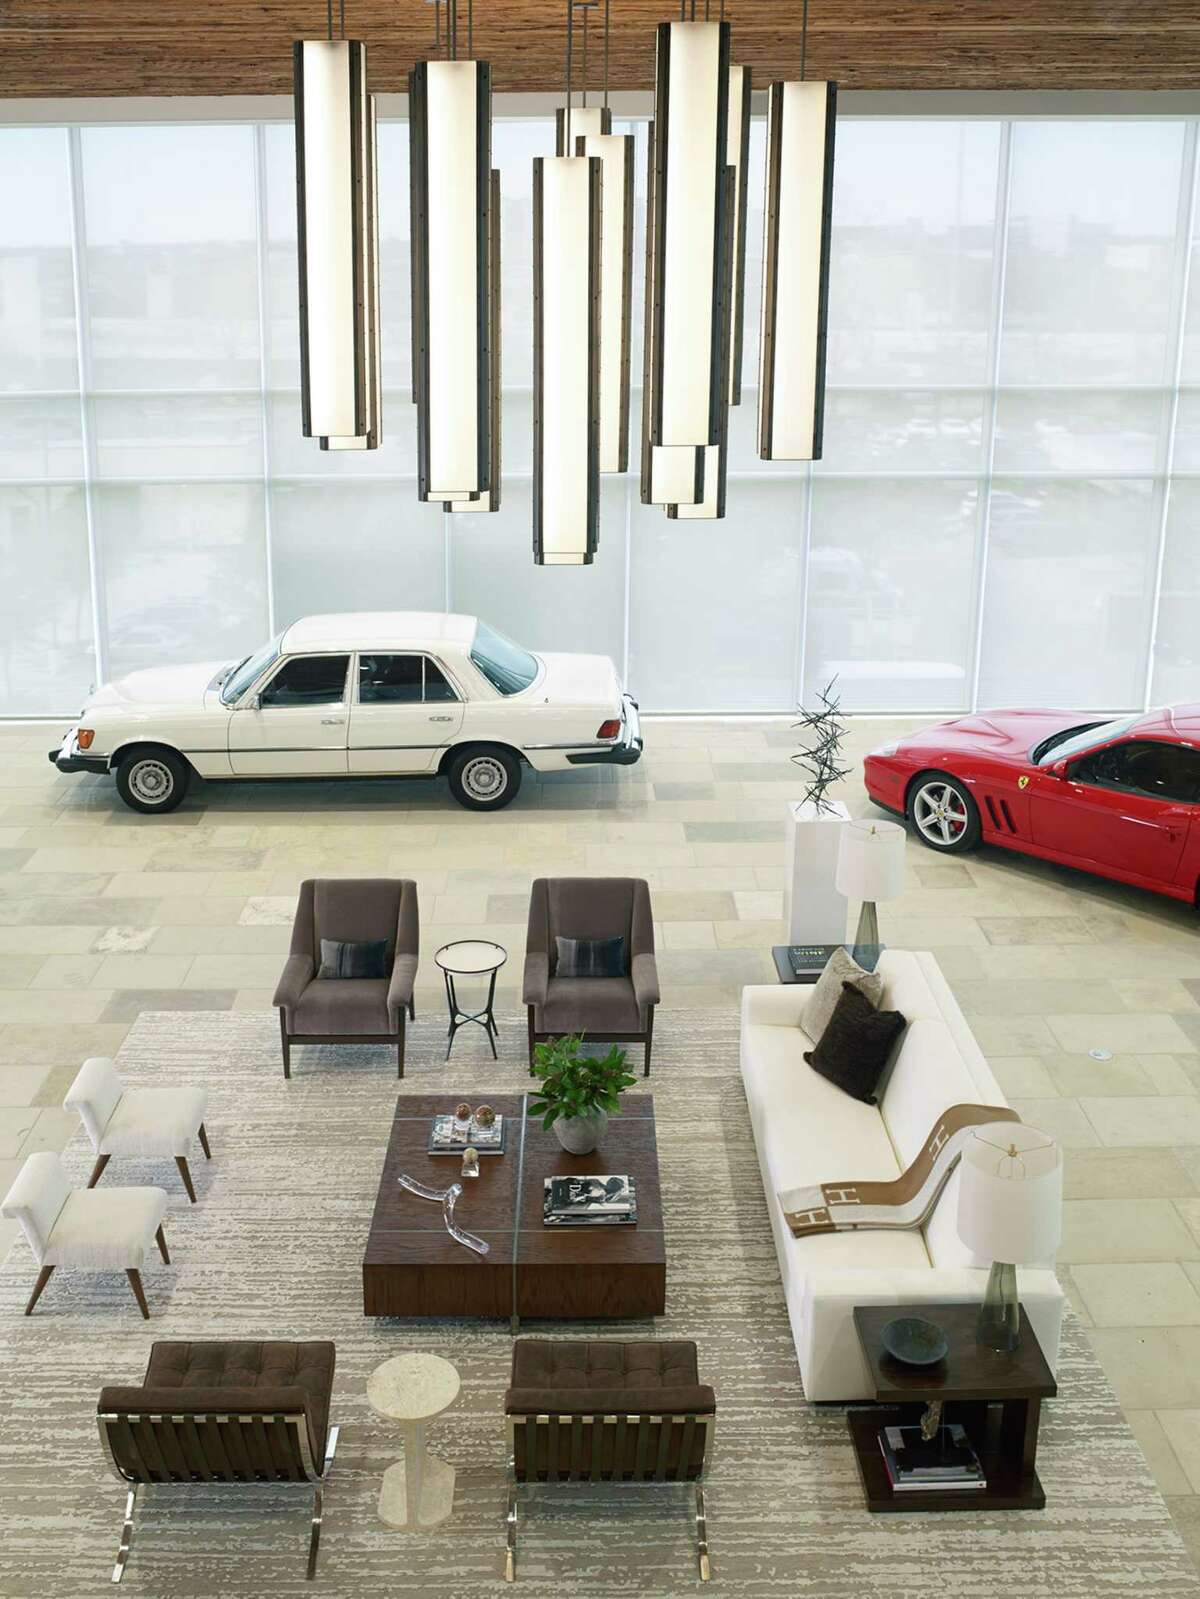 Ken Enders of Mercedes Benz of Sugar Land has added a 6,000-square-foot space to his Sugar Land showroom for business events and to entertain VIP customers. Part of his own car collection is on display.